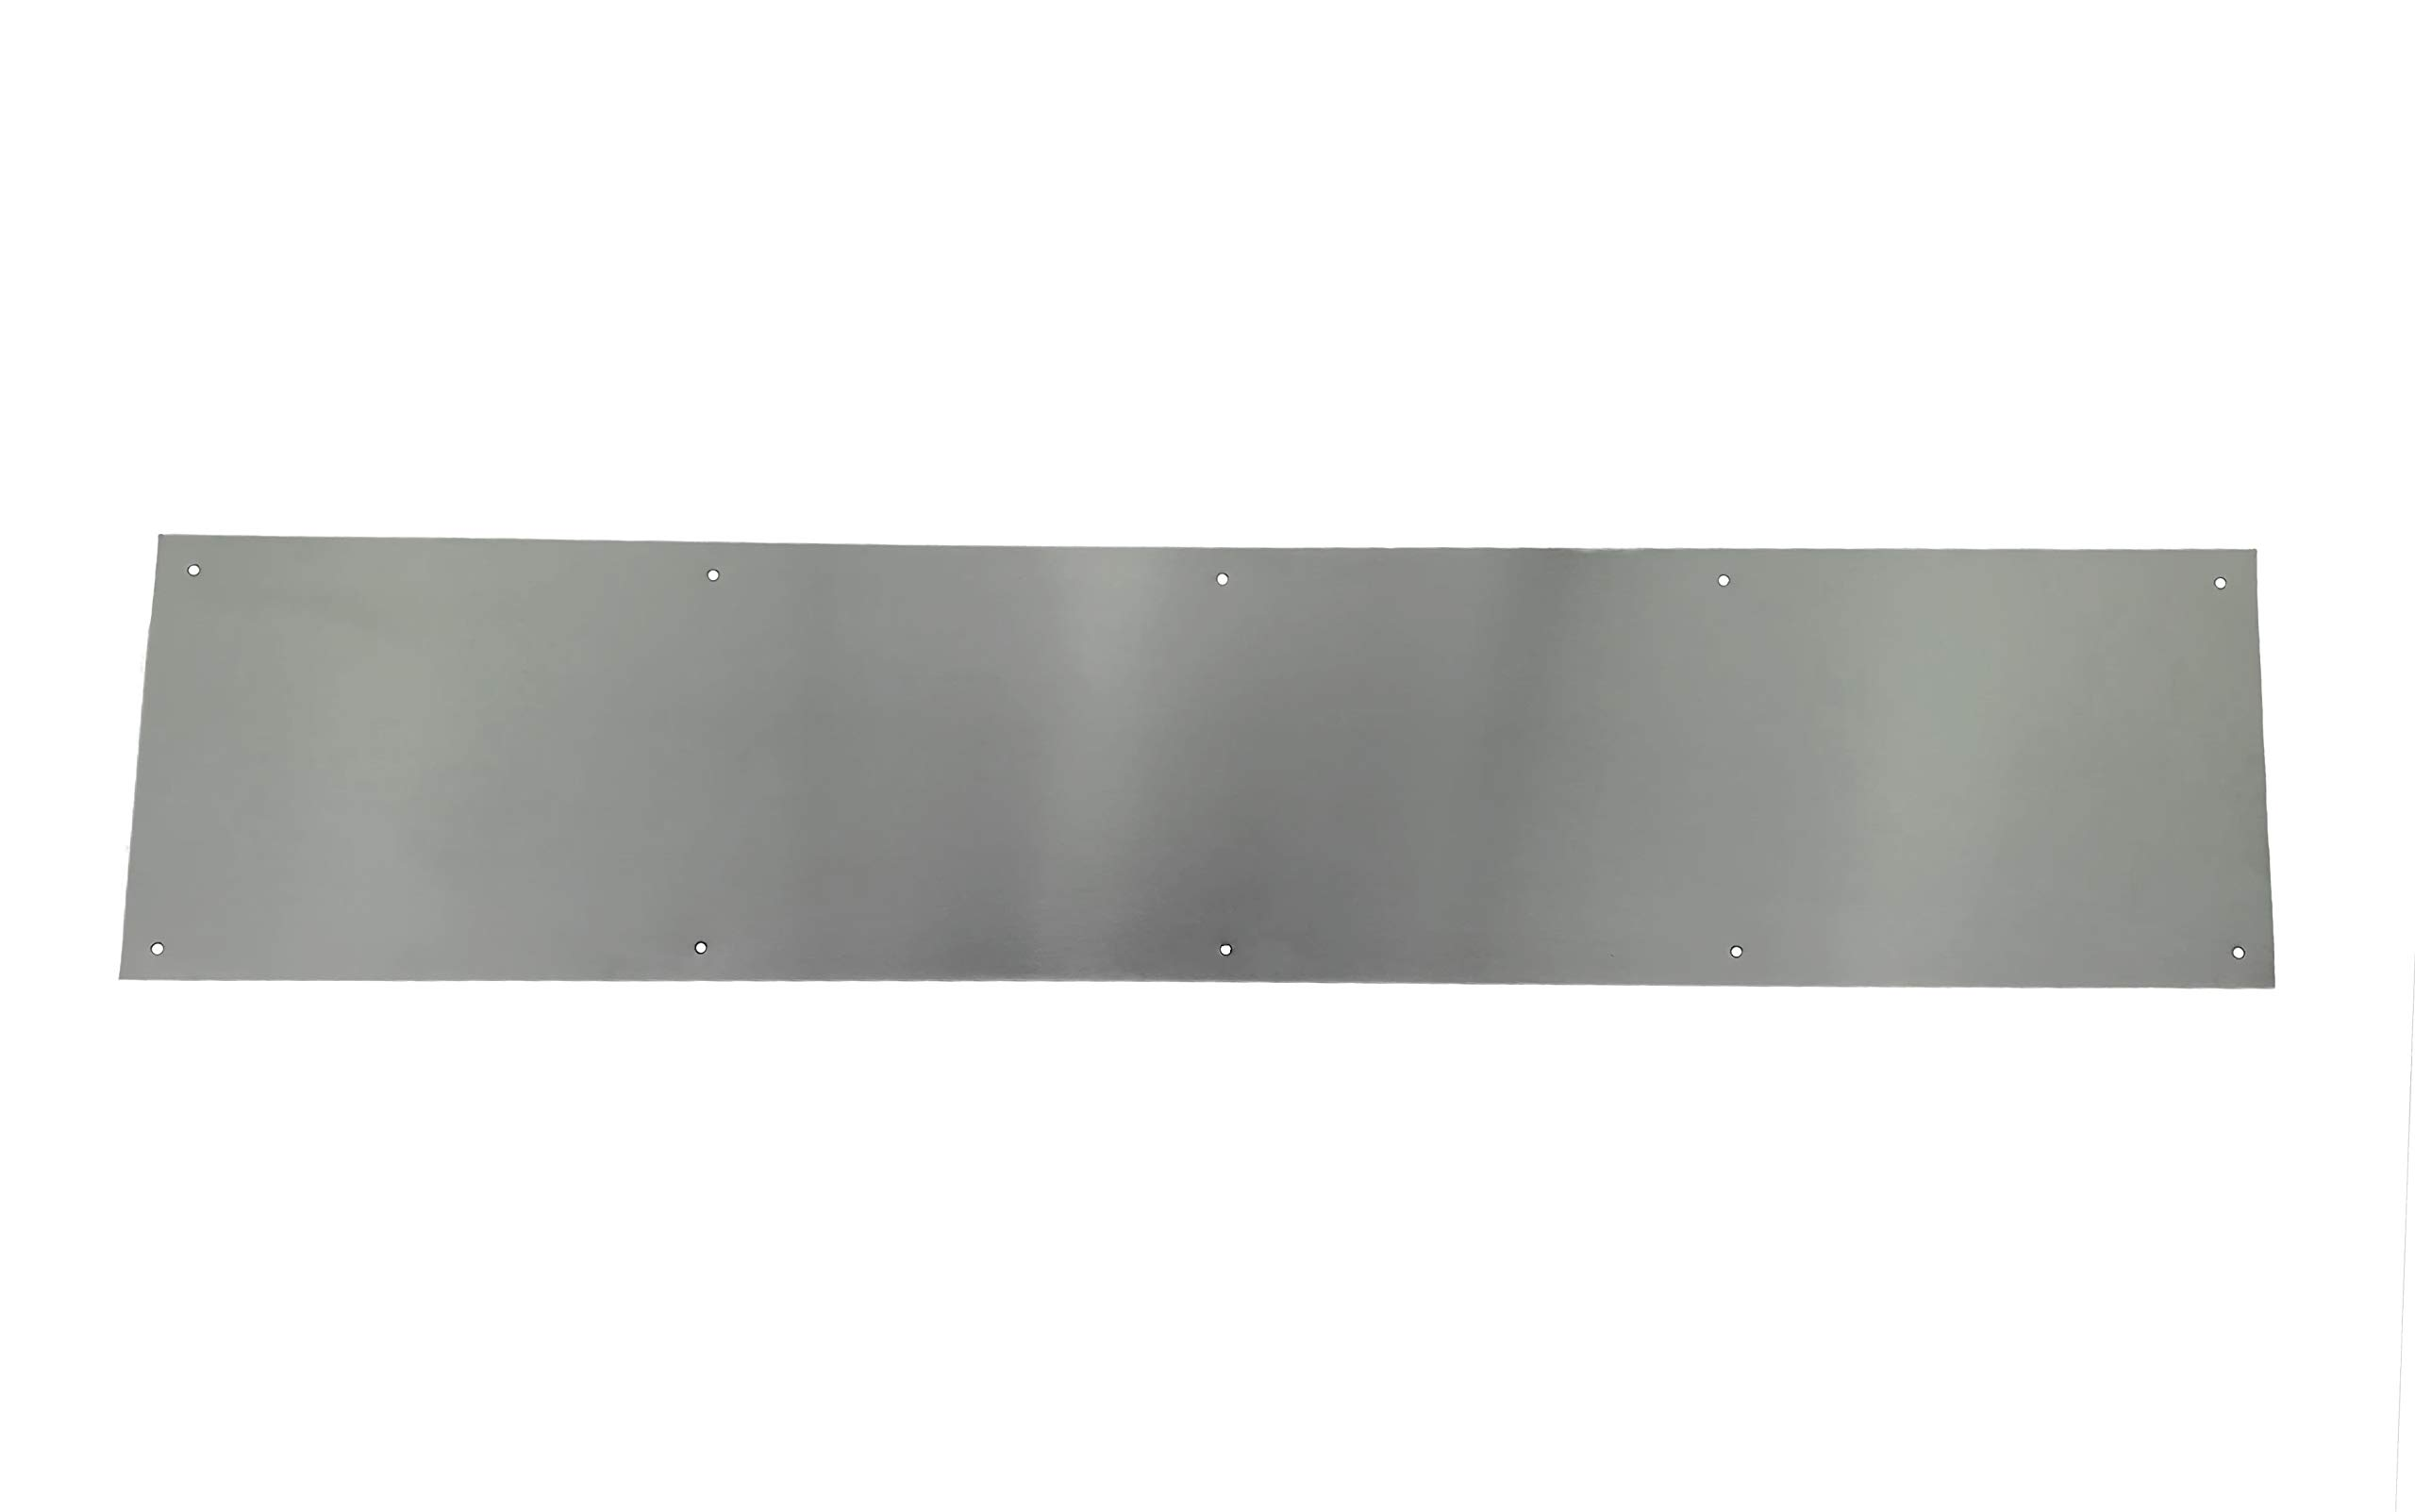 Stainless Steel Door Kick Plate - Heavy Duty Door Protection Plate Commercial Grade - Mop Plate Available in Many Sizes - Mounting Hardware Included (8'' x 28'')